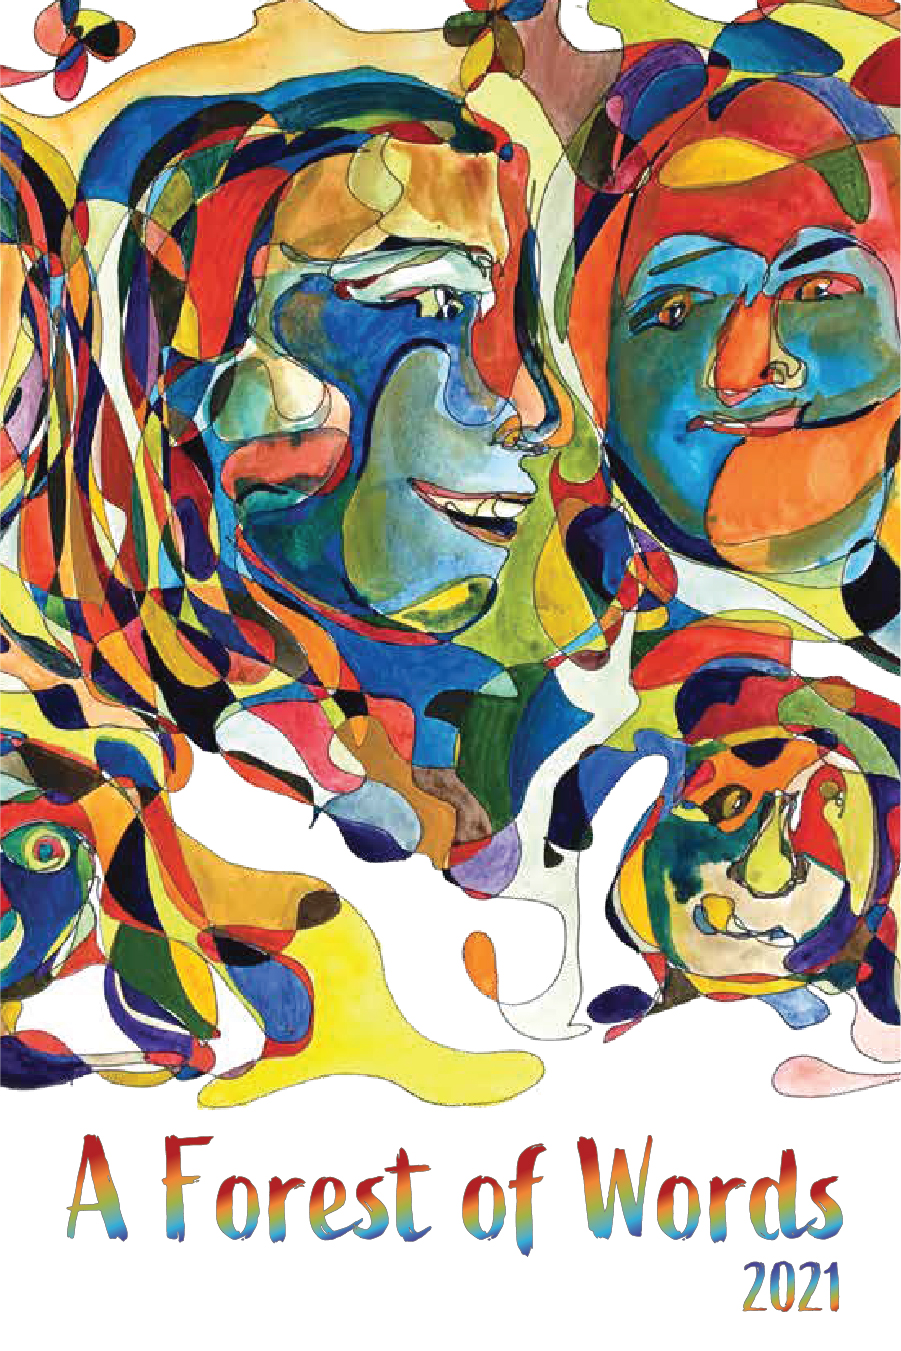 A Forest of Words cover art shows a collage of faces by teen artist Siena Stiles.